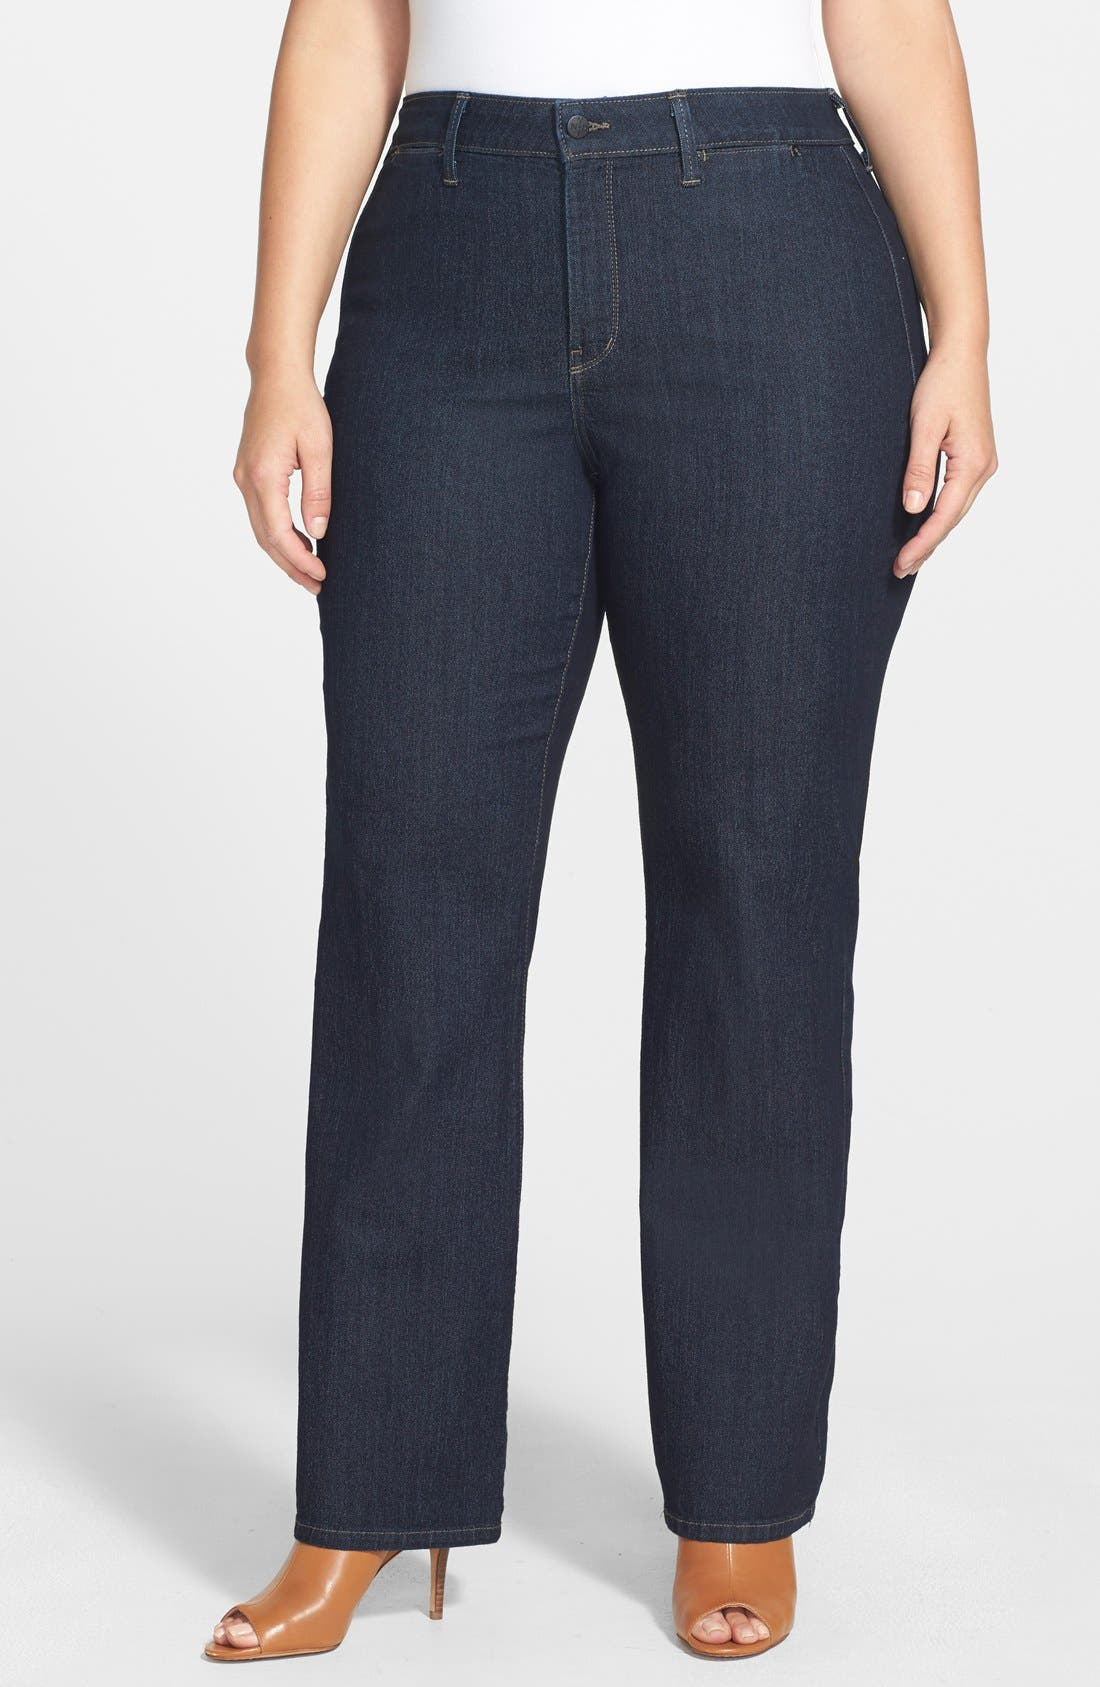 'Isabella' Stretch Trouser Jeans,                             Main thumbnail 1, color,                             Dark Enzyme